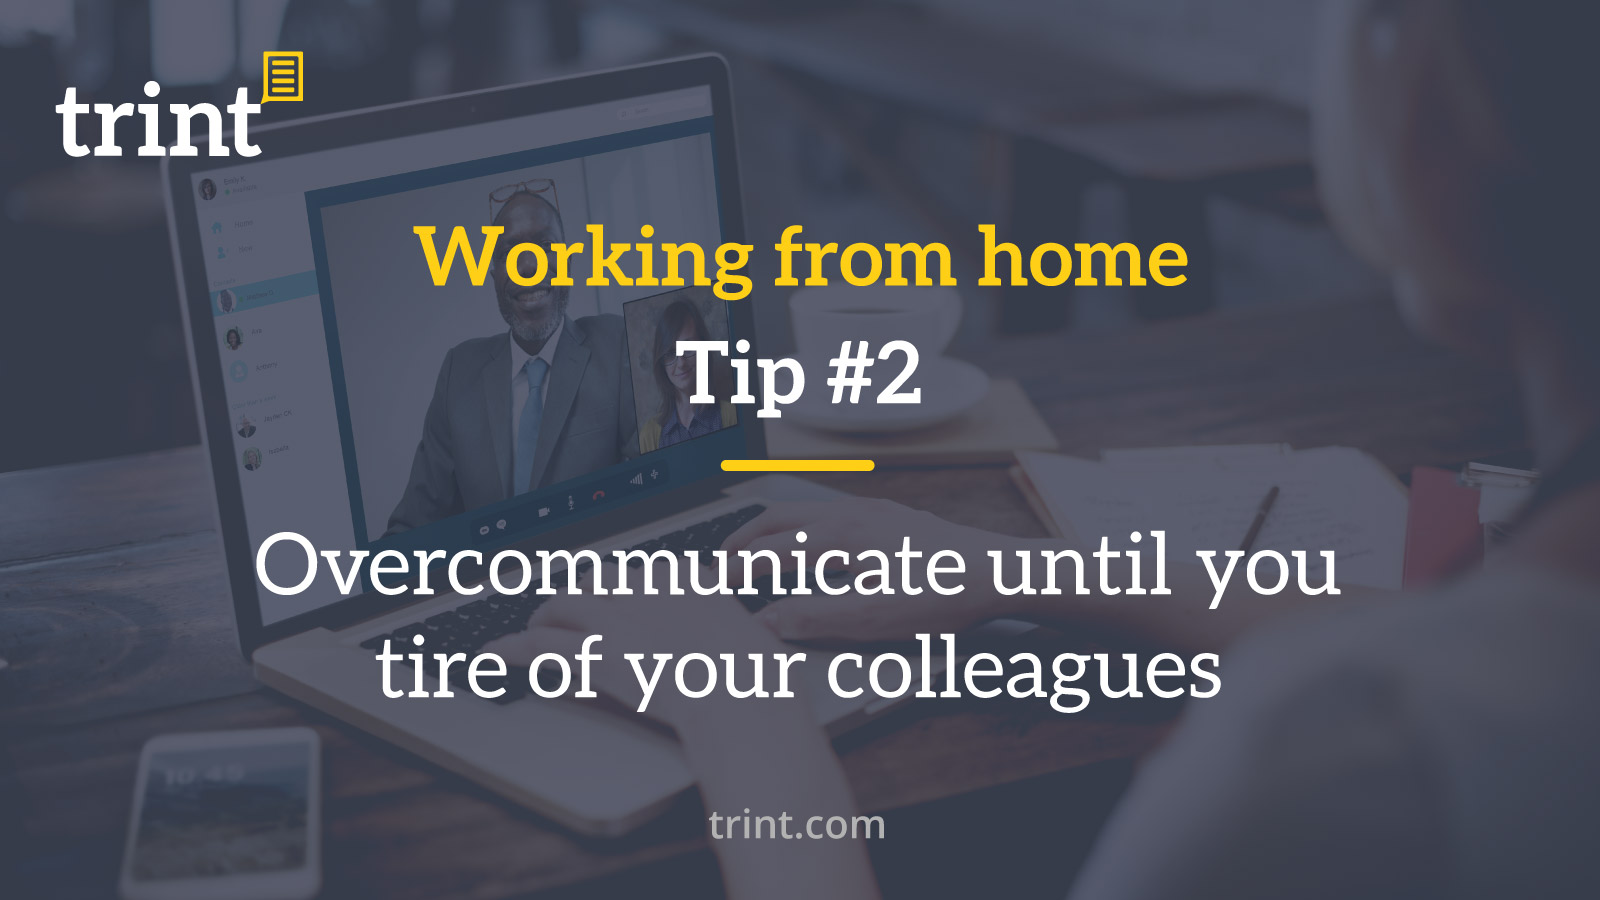 Trint WFH Tip 2 Overcommunicate until you tire of your colleagues